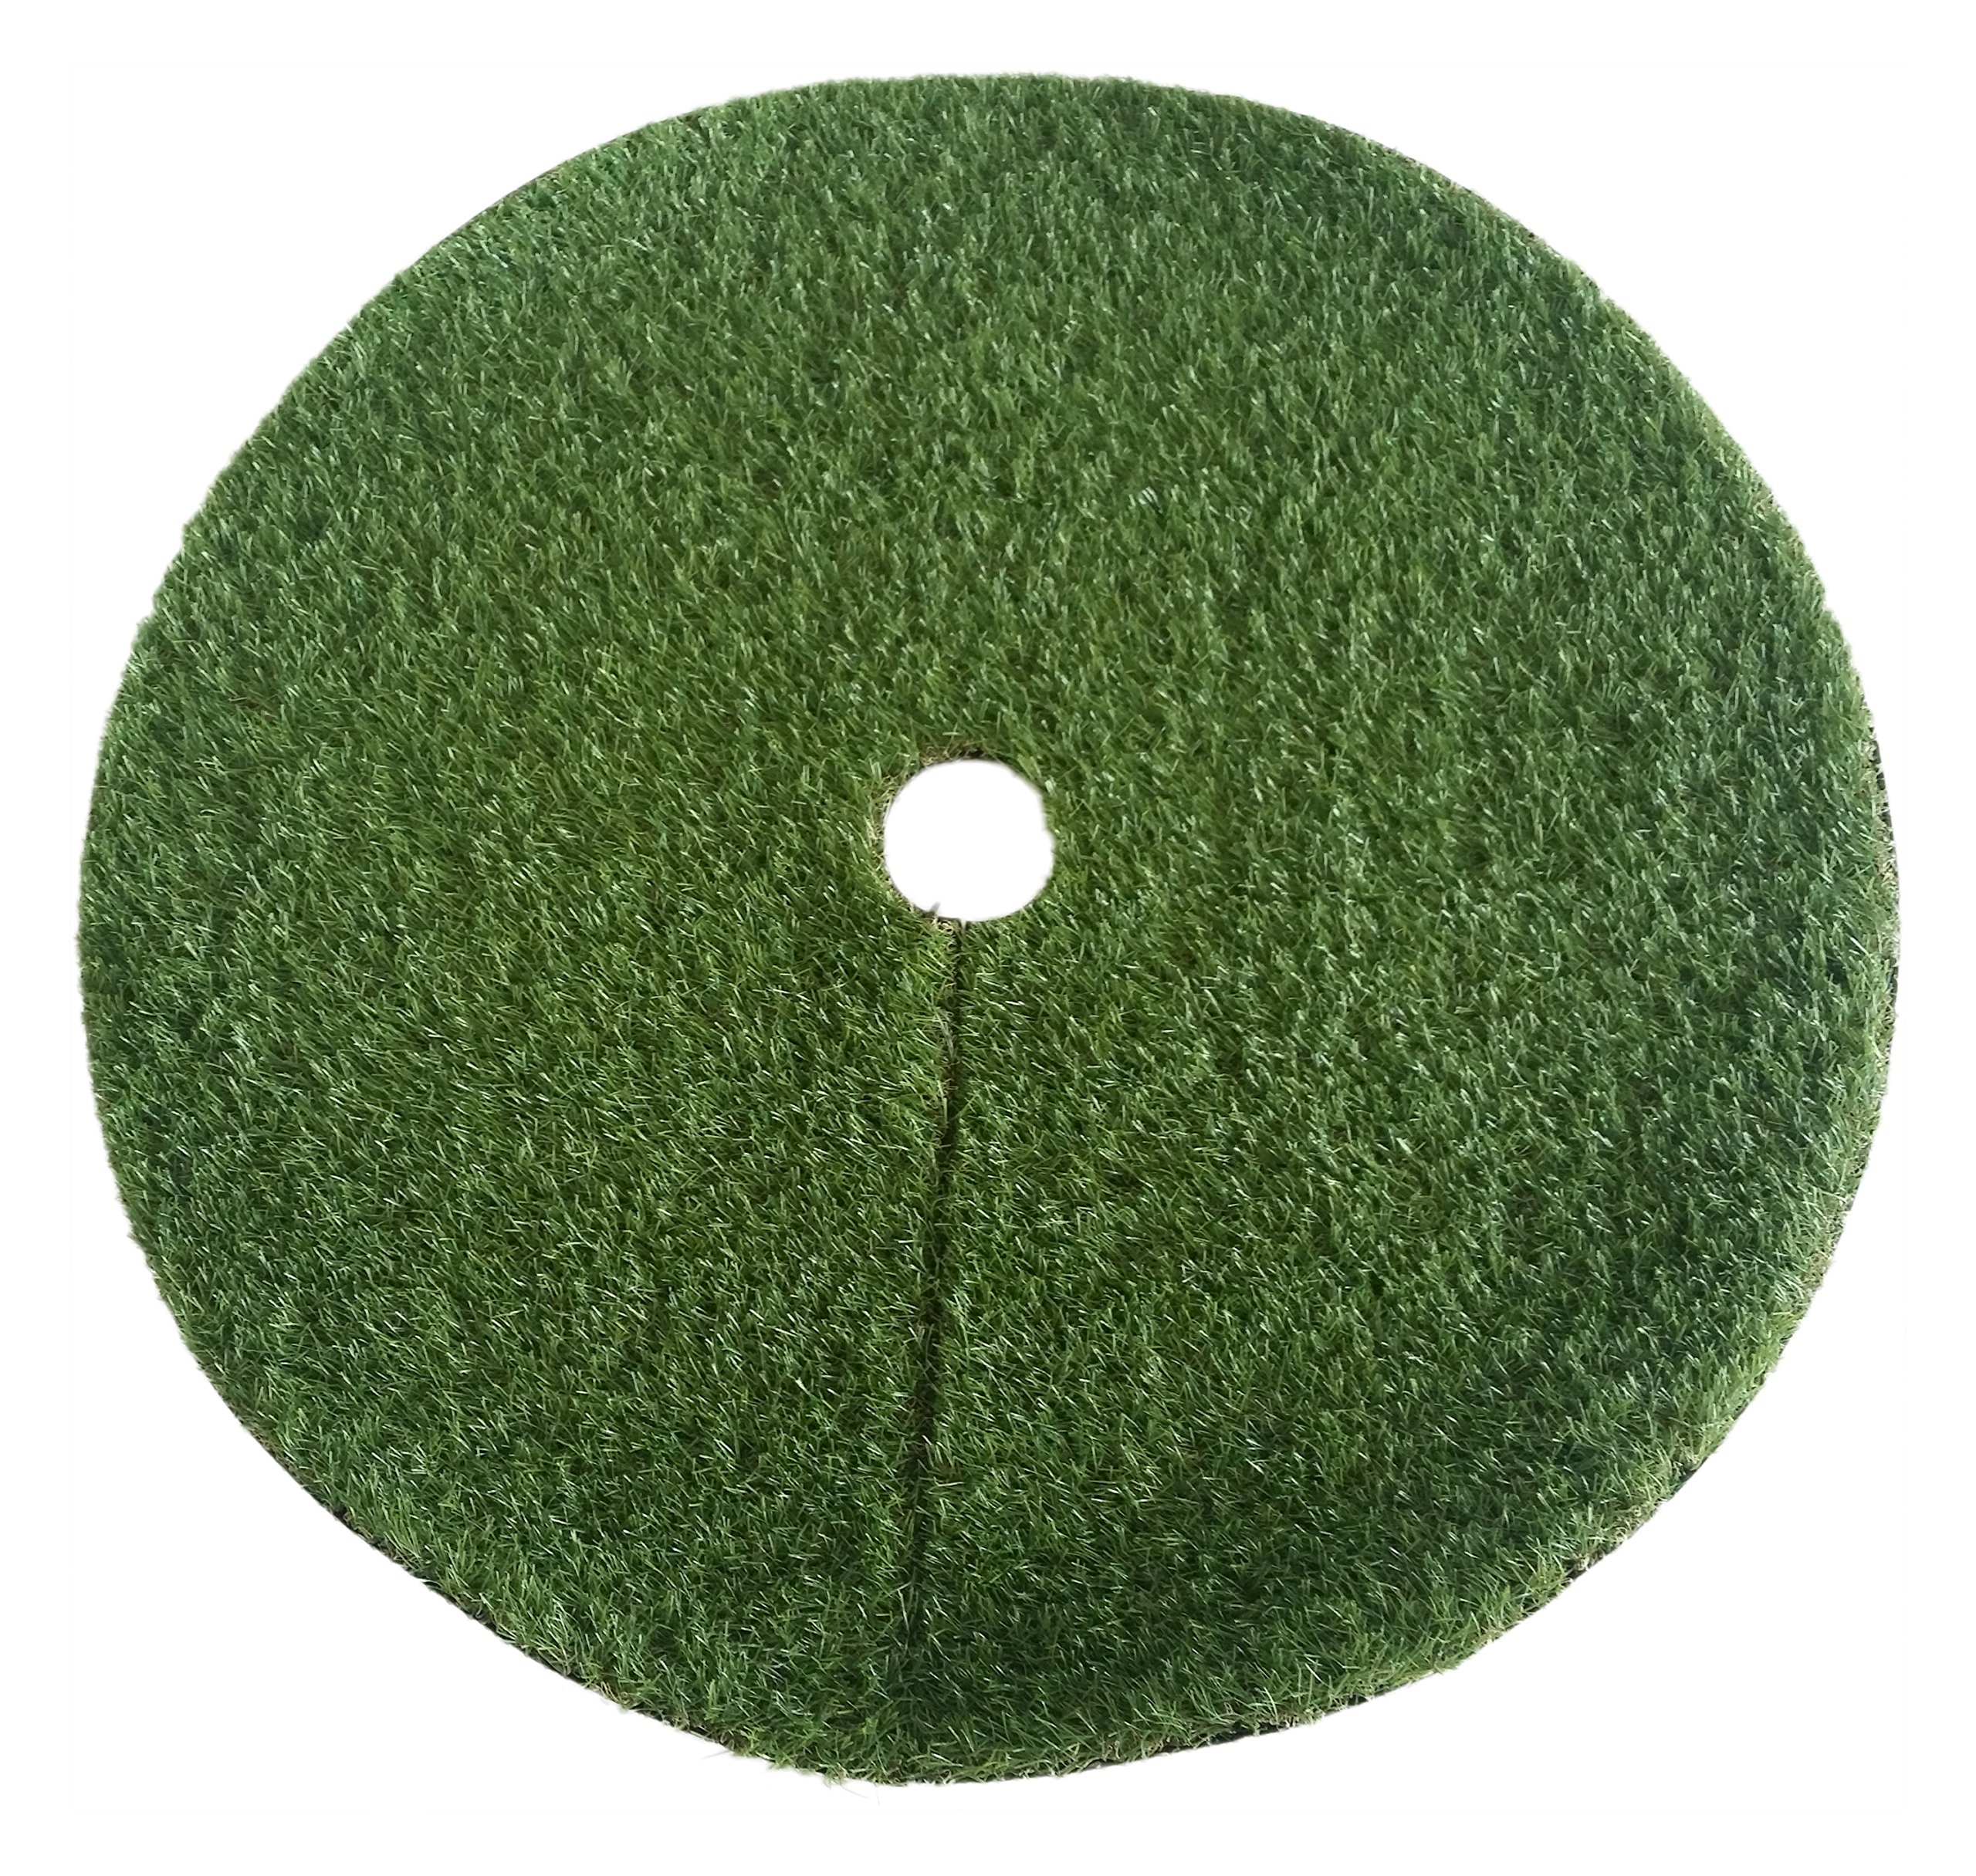 Zen Garden Artificial Grass Christmas Tree Skirt w/ Anti-Slip Rubber Base (36'' Diameter)   Realistic Synthetic Round Grass Rug   Indoor & Outdoor Xmas Tree Skirts   Unique Holiday Decorations (Green)